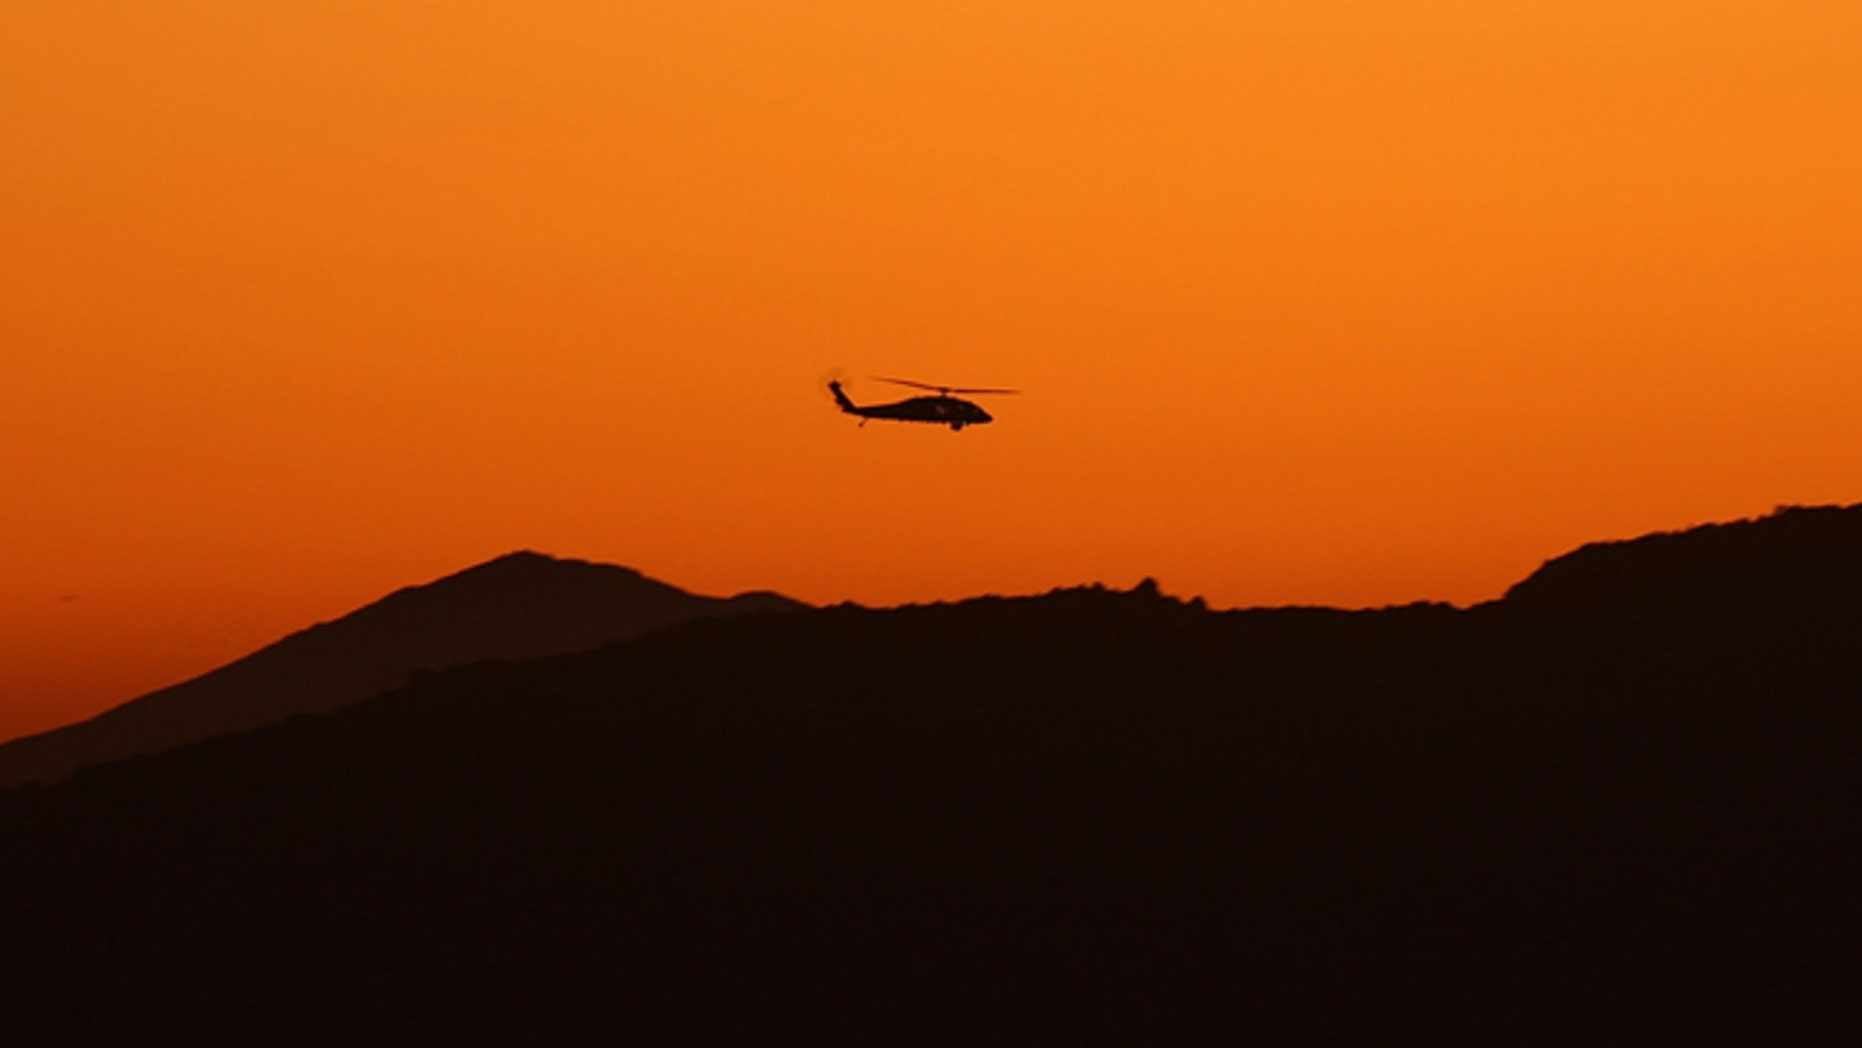 CAMPO, CA - JULY 29:  A helicopter patrols the hills where US Border Patrol agents are carrying out special operations following the first fatal shooting of a US Border Patrol agent in more than a decade on July 29, 2009 near the rural town of Campo, some 60 miles east of San Diego, California. 30-year-old agent Robert Rosas was killed on July 23 when he tracked a suspicious group of people alone in remote brushy hills north of the border in this region. Violence has been escalating in Mexico with fights between well-armed drug cartels and the army becoming common since Mexican President Felipe Calderon began his army-backed war on the cartels. Since the conflict began in late 2006, 12,800 people have been killed. Mexican officials charge that guns which are easily smuggled in from the US have flooded into Mexico where gun laws are strict.   (Photo by David McNew/Getty Images)